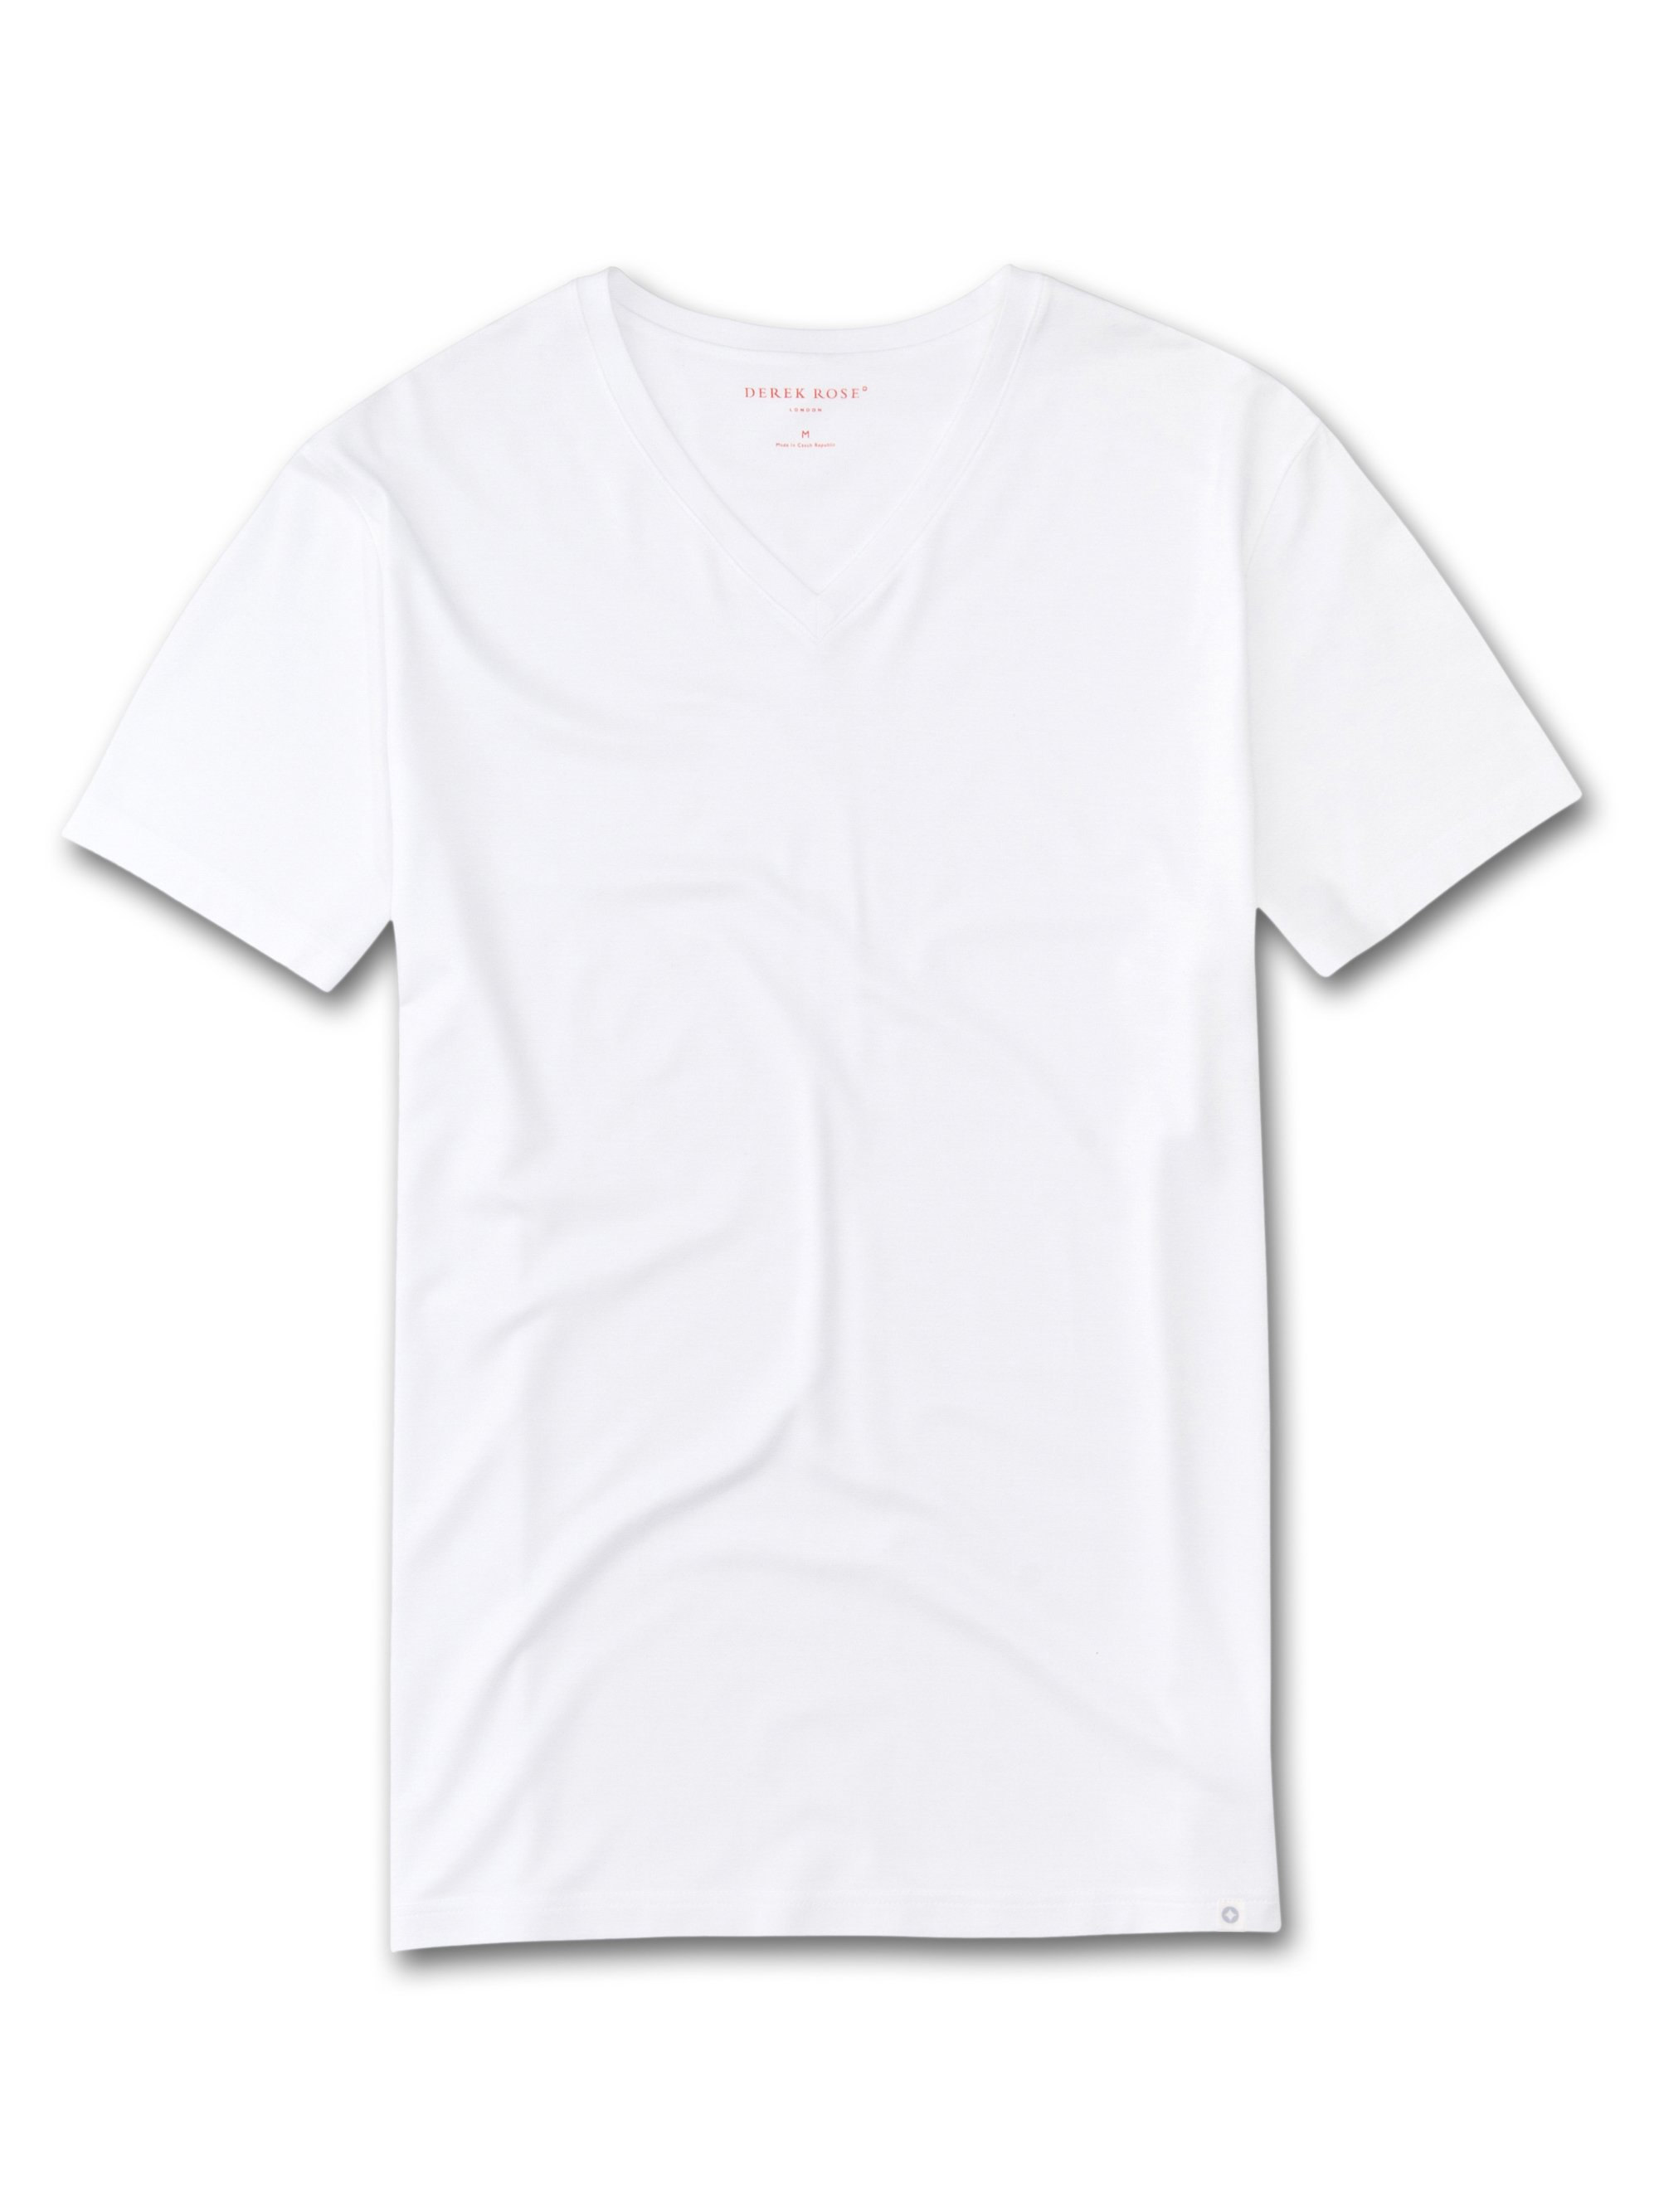 sneakers for cheap d6436 19b2f mens short sleeve v neck t shirt basel micro modal white main.jpg